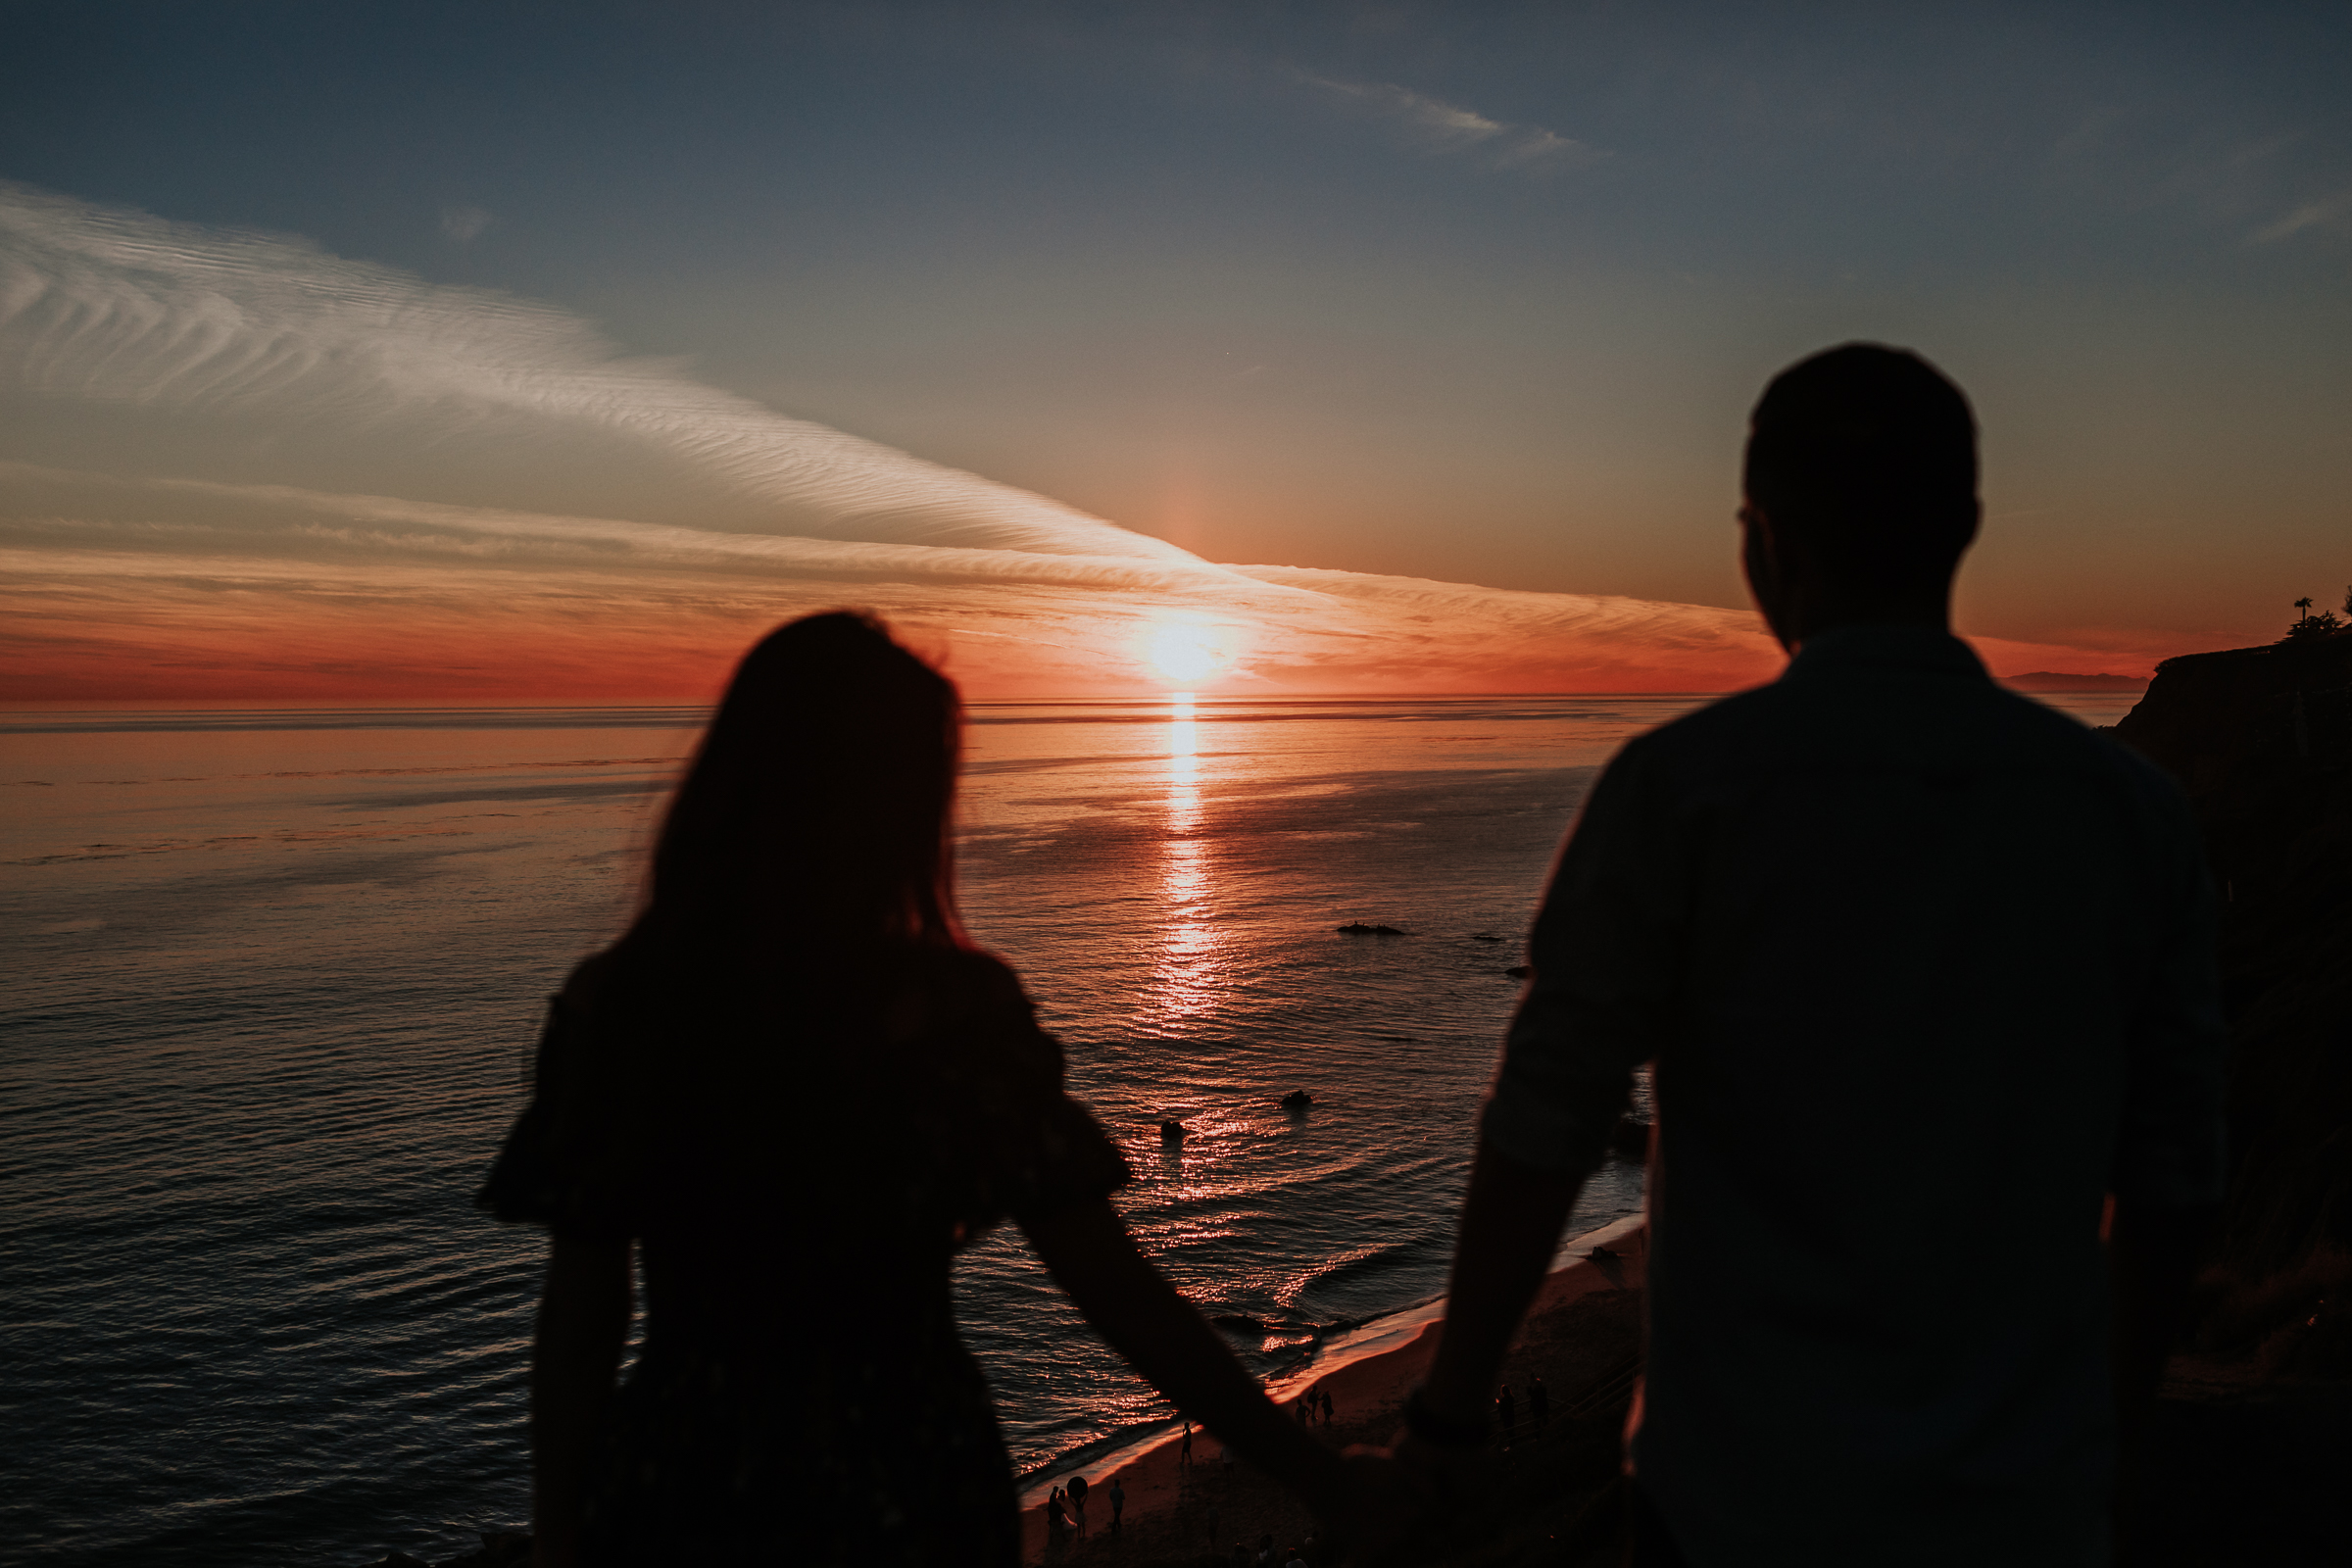 Malibu-El-Matador-State-Beach-Sunset-Engagement-Photos-Los-Angeles-Documentary-Wedding-Photographer-38.jpg